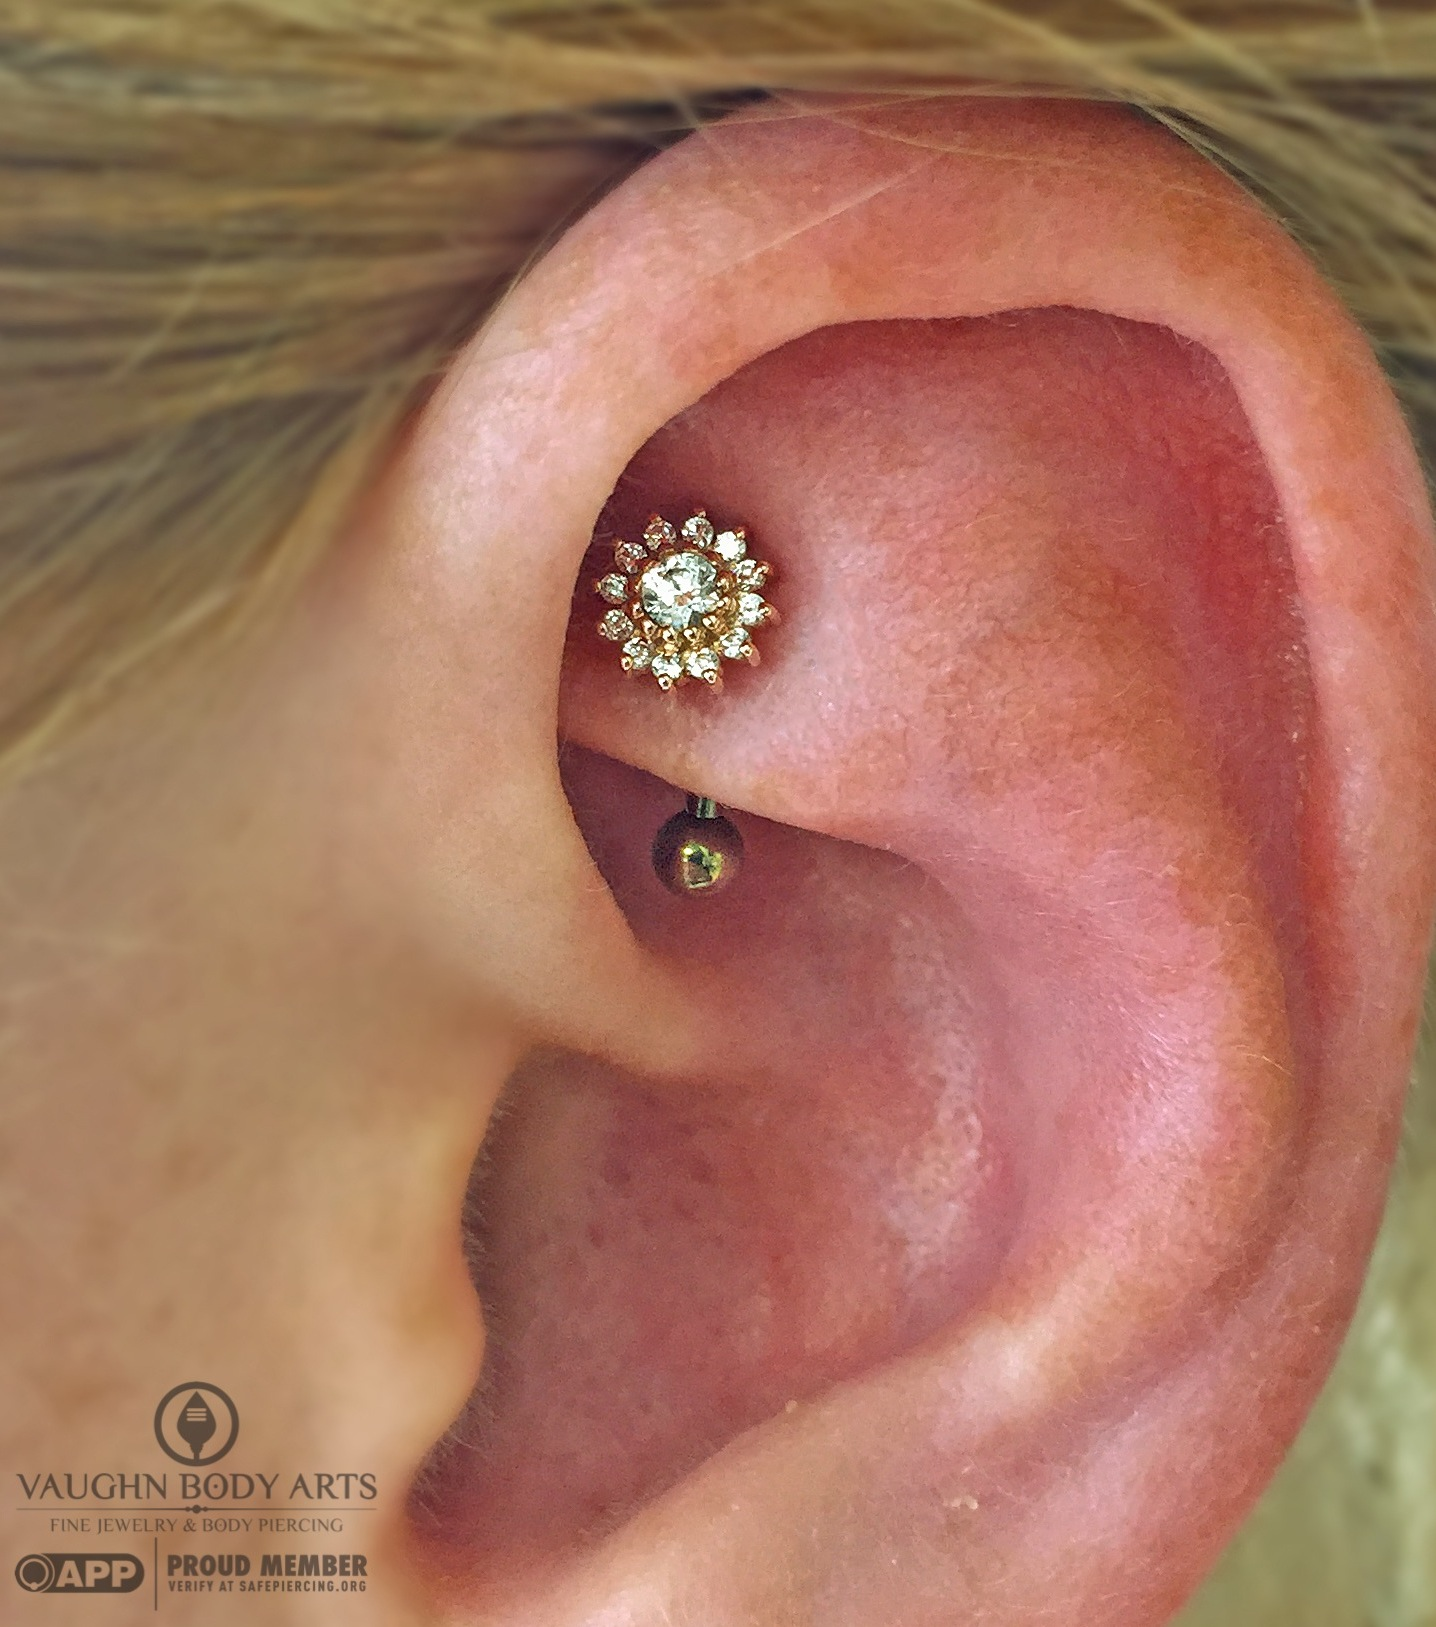 """Rook piercing with a 14k rose gold """"Rose"""" end featuring clear cz's from BVLA."""